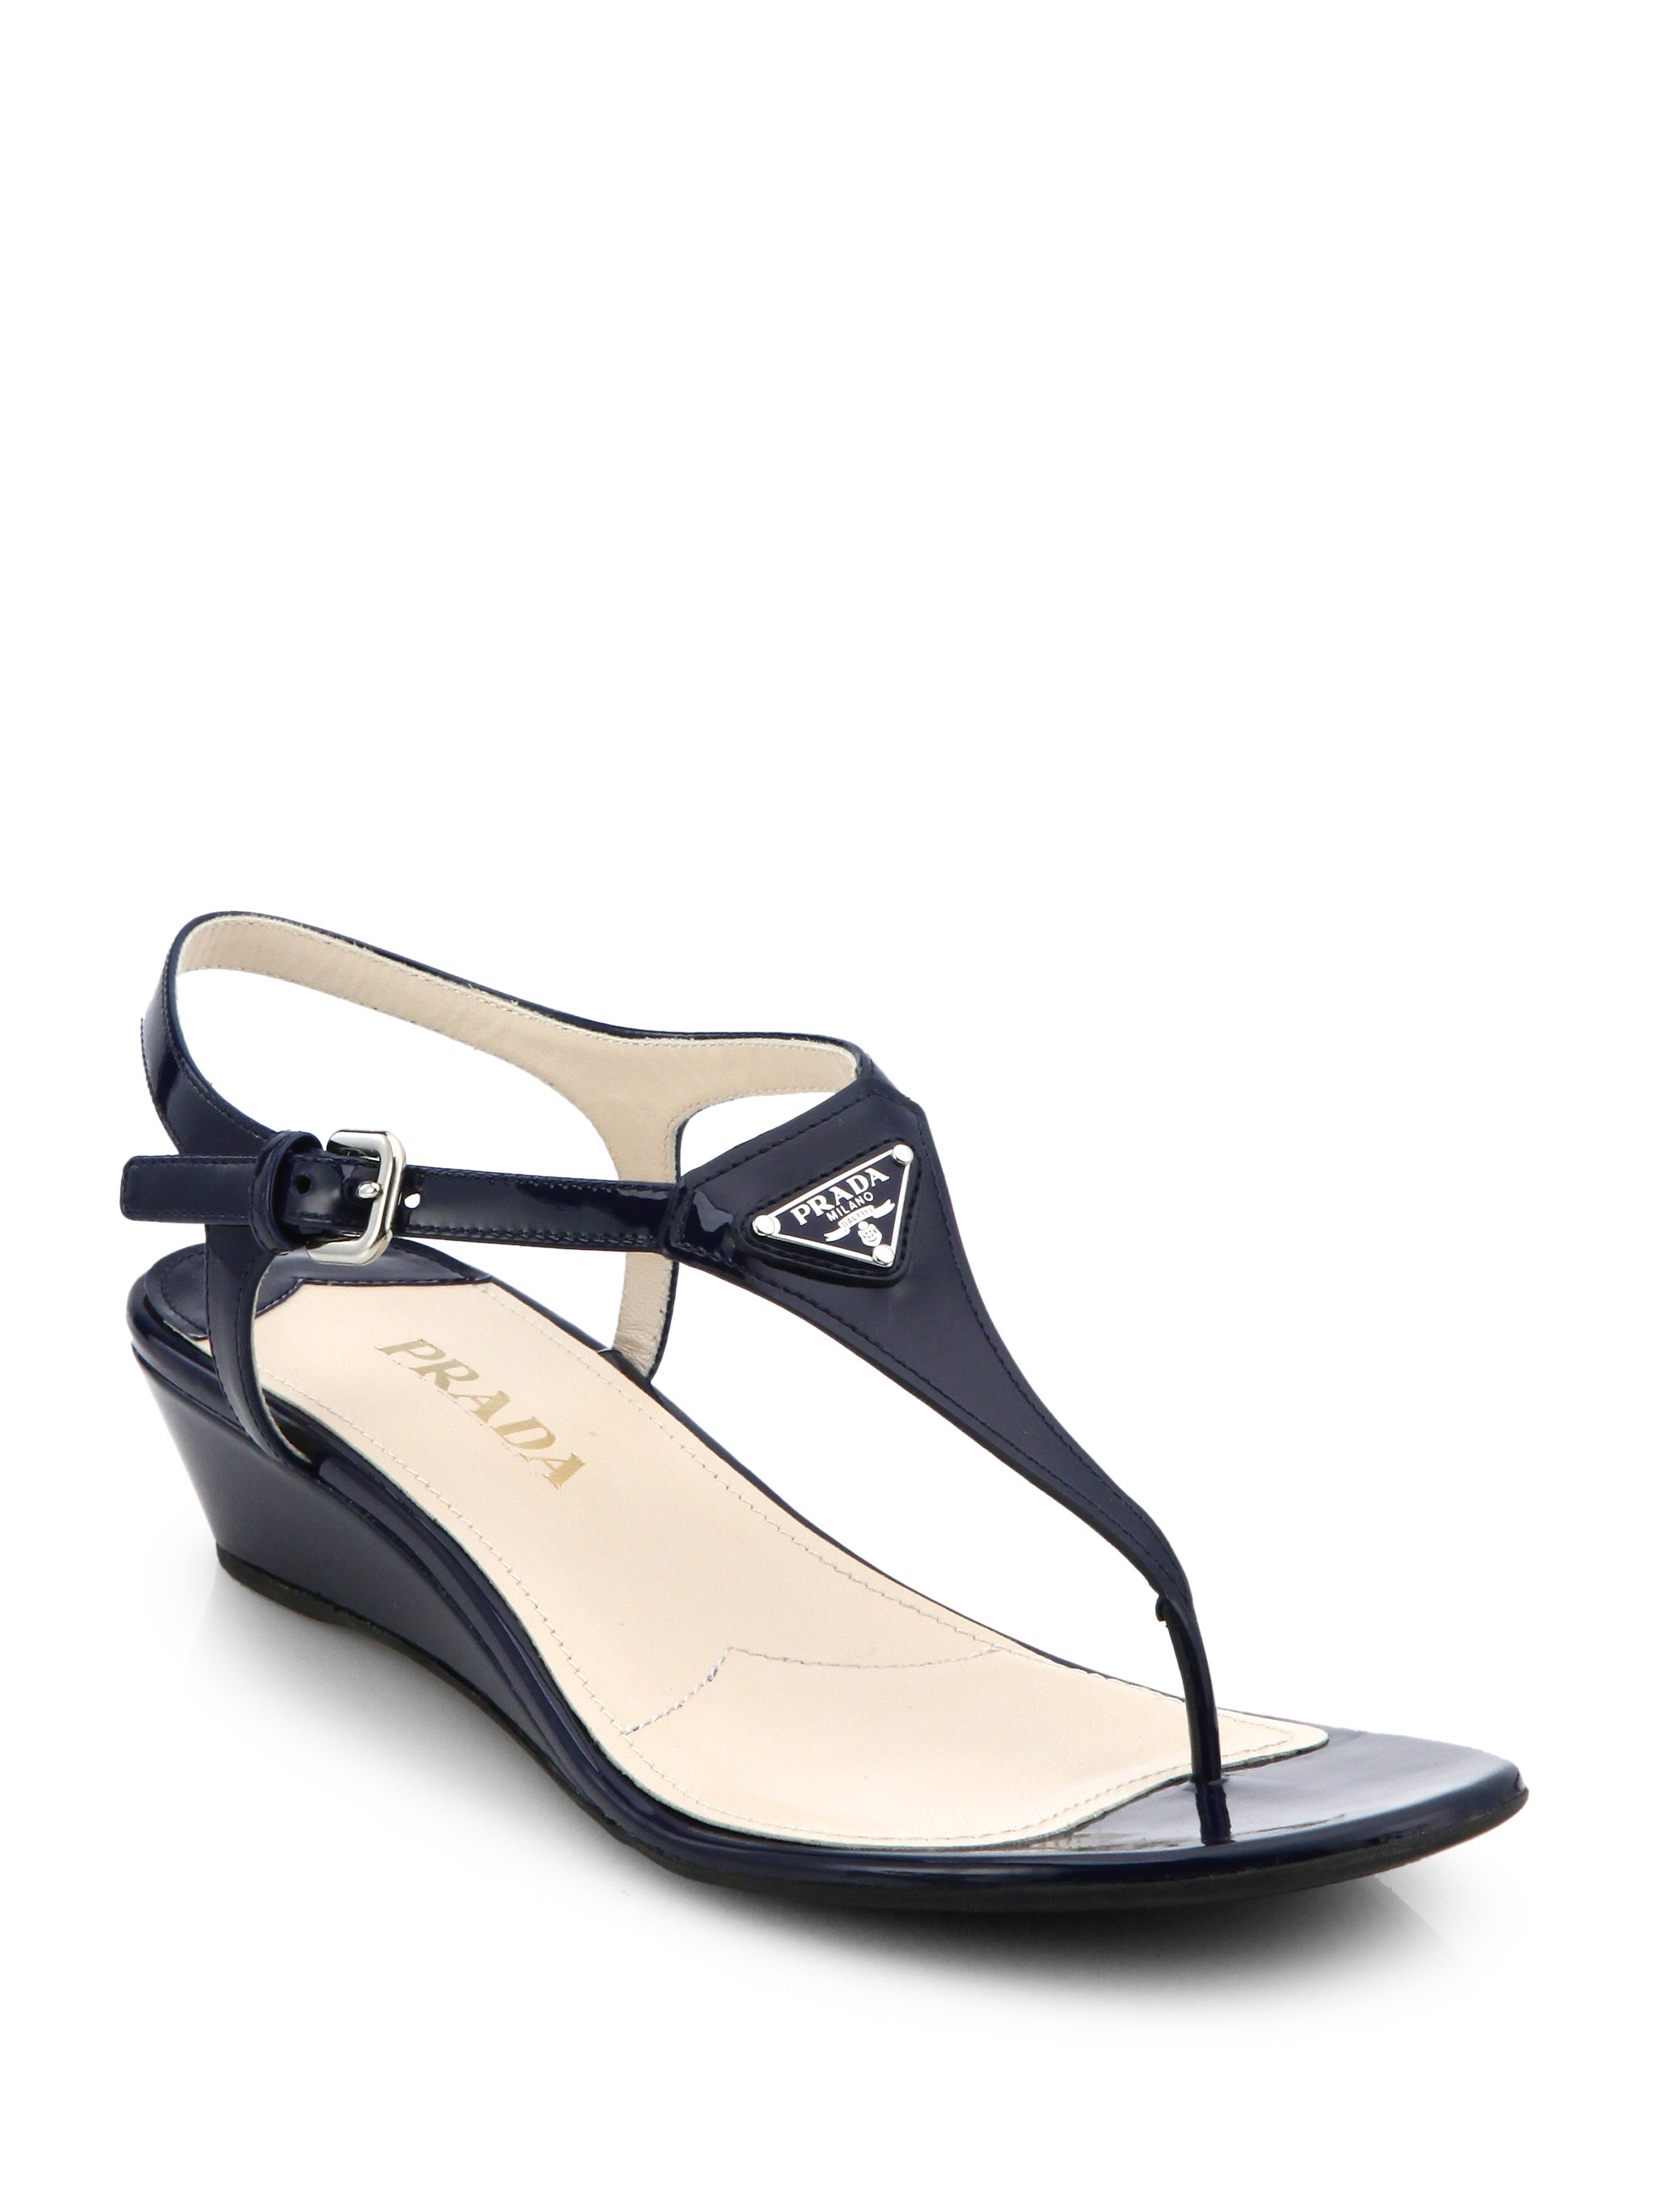 Lyst Prada Patent Leather Wedge Thong Sandals In Blue